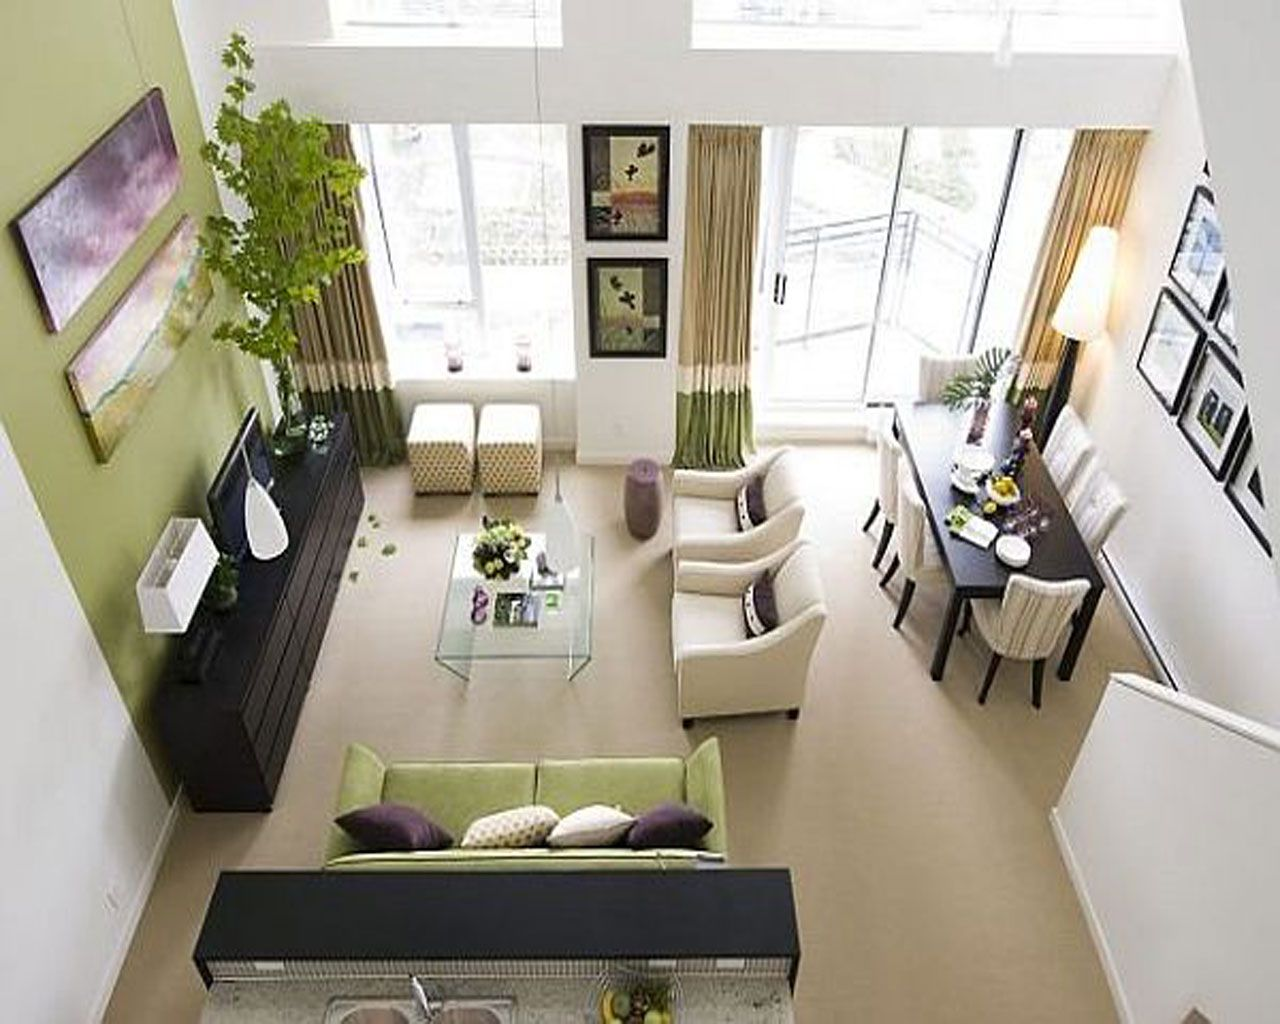 Living Room Very Small Living Room Ideas 1000 images about small living room on pinterest rooms designs and decorating ideas